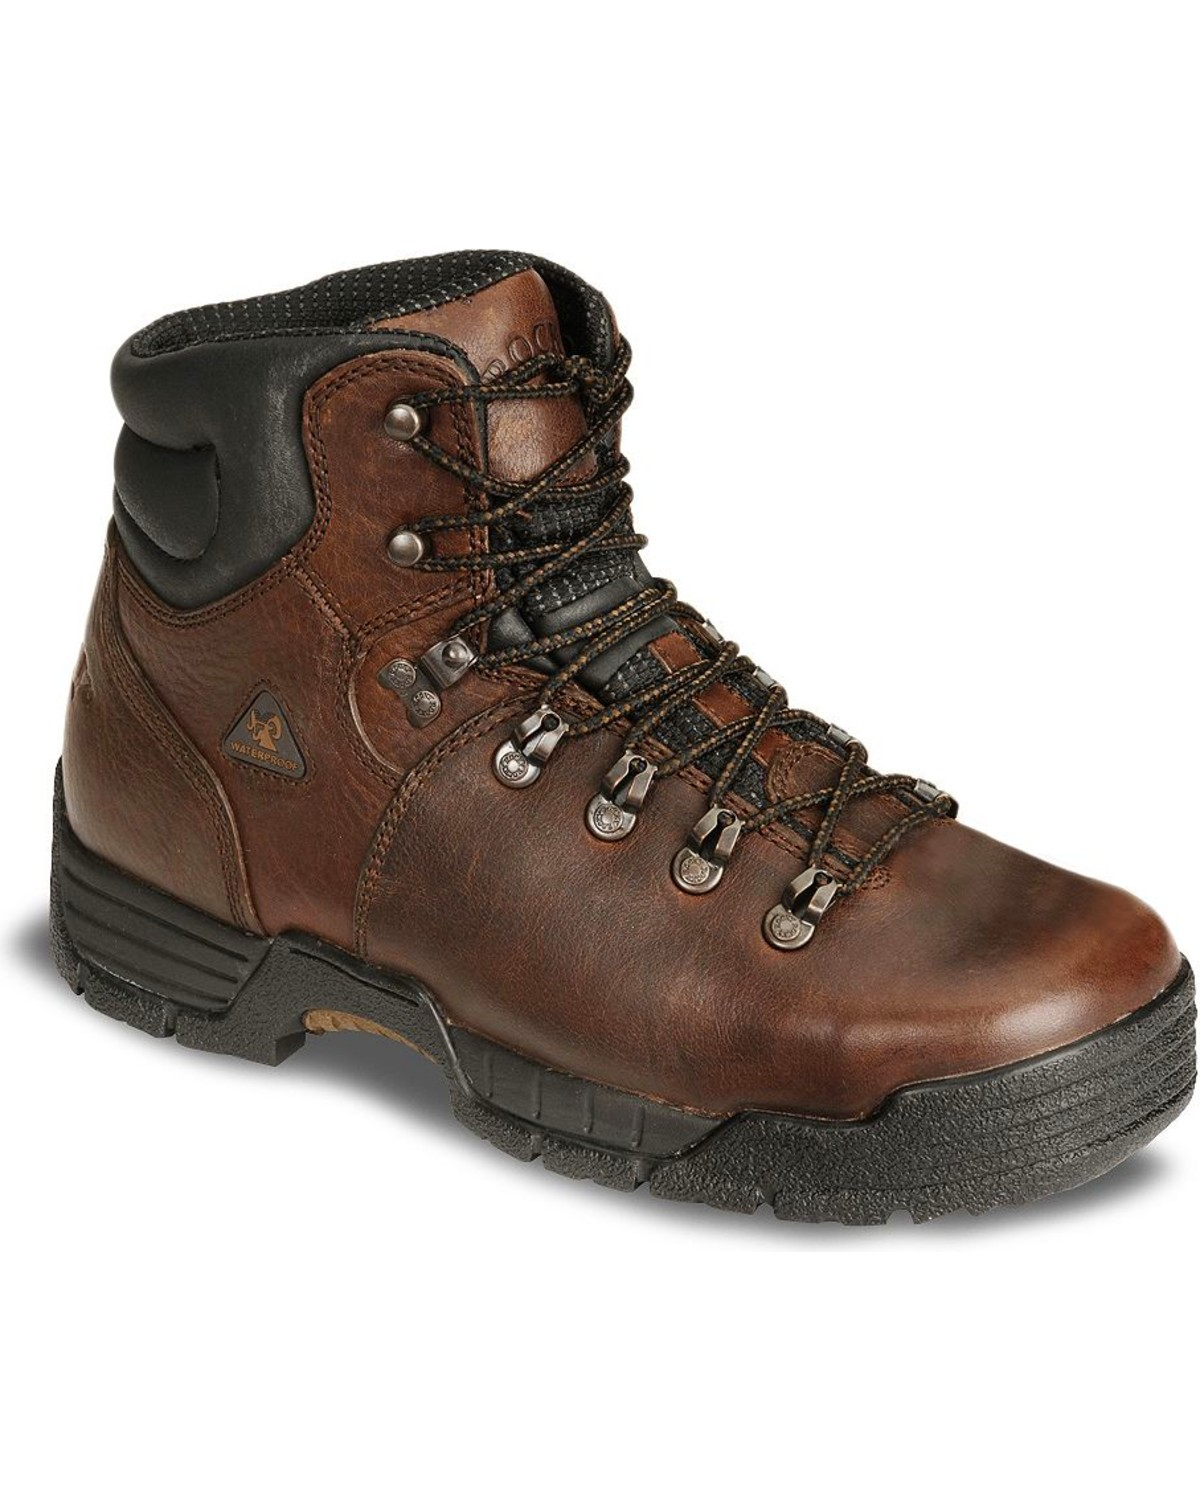 Mobilite Steel Toe Hiking Boots